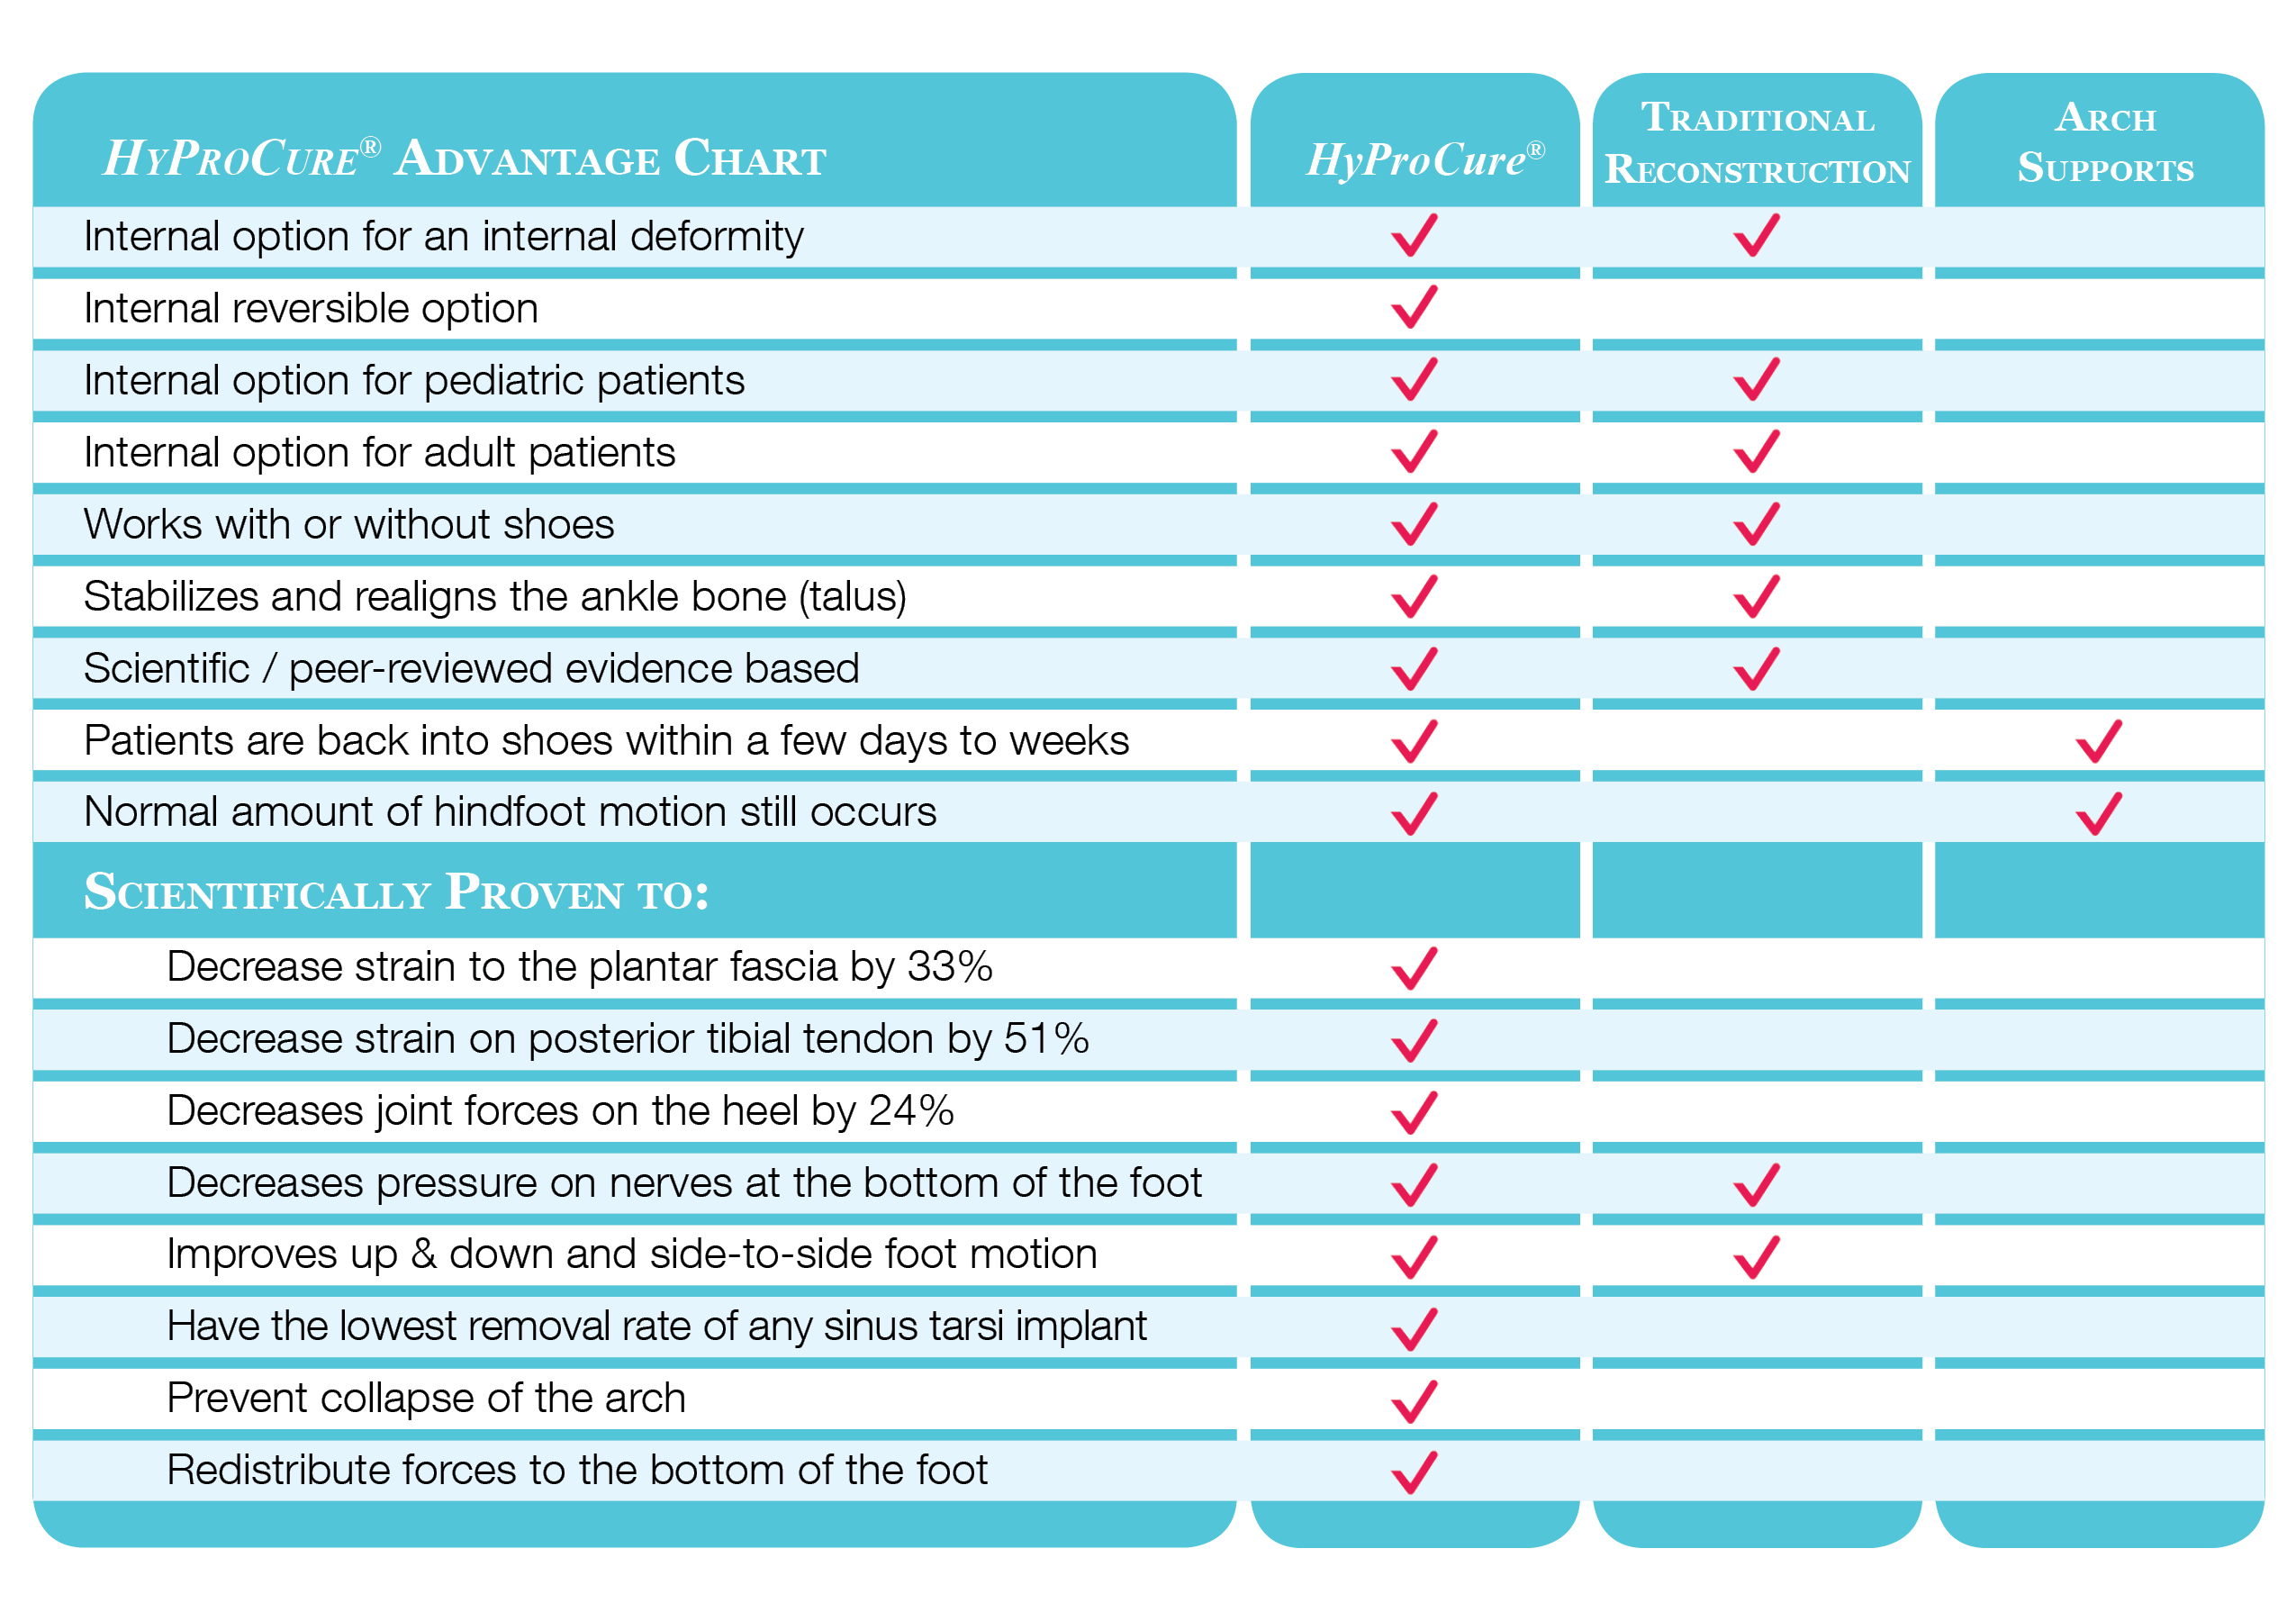 HyProCure vs other treatments comparison chart